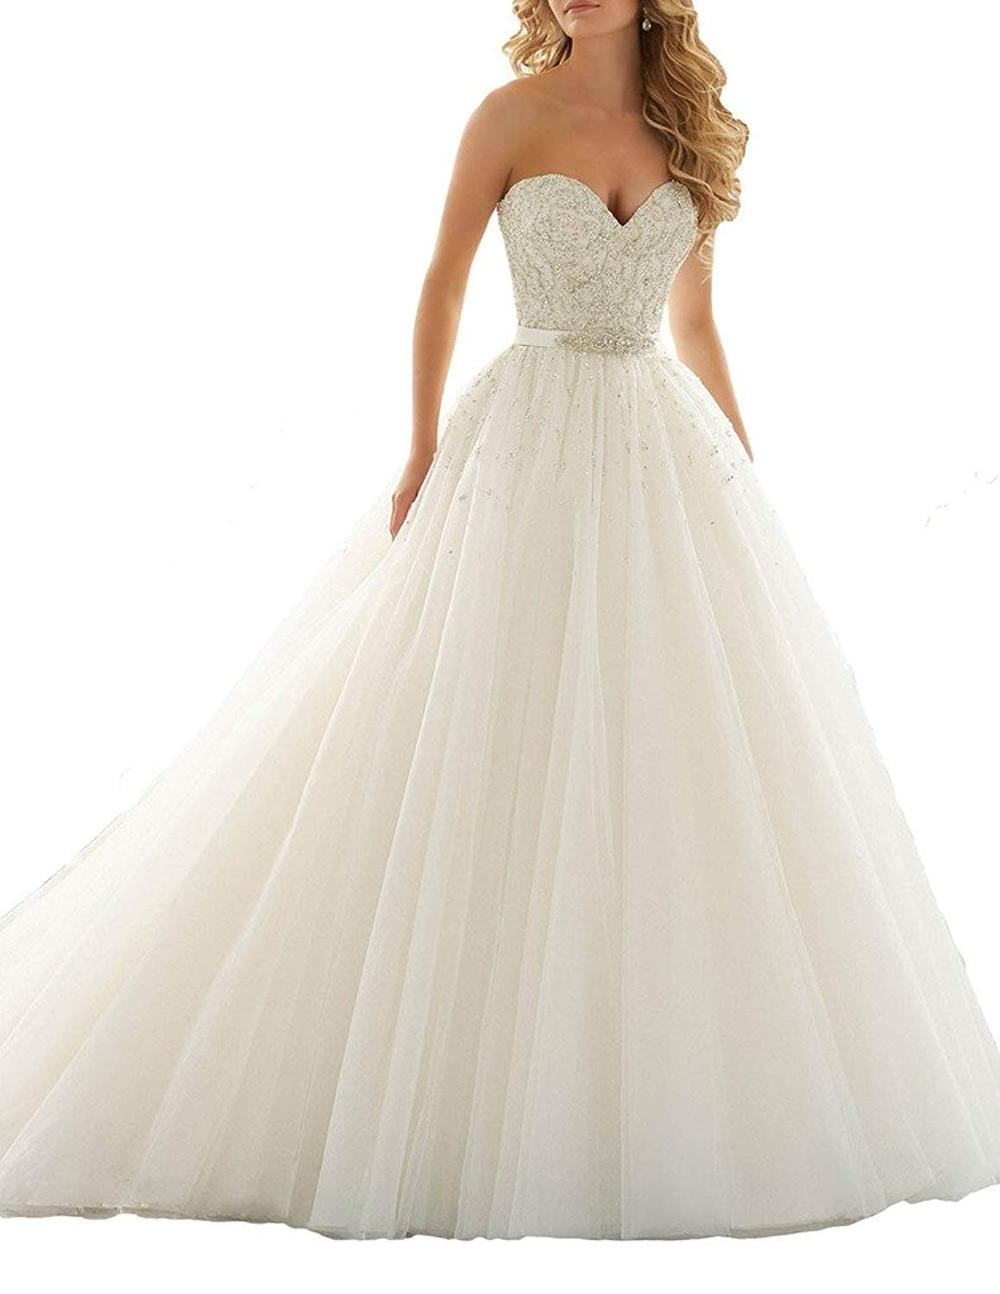 Modest Ball Gowns, Modest Ball Gowns Suppliers and Manufacturers at ...